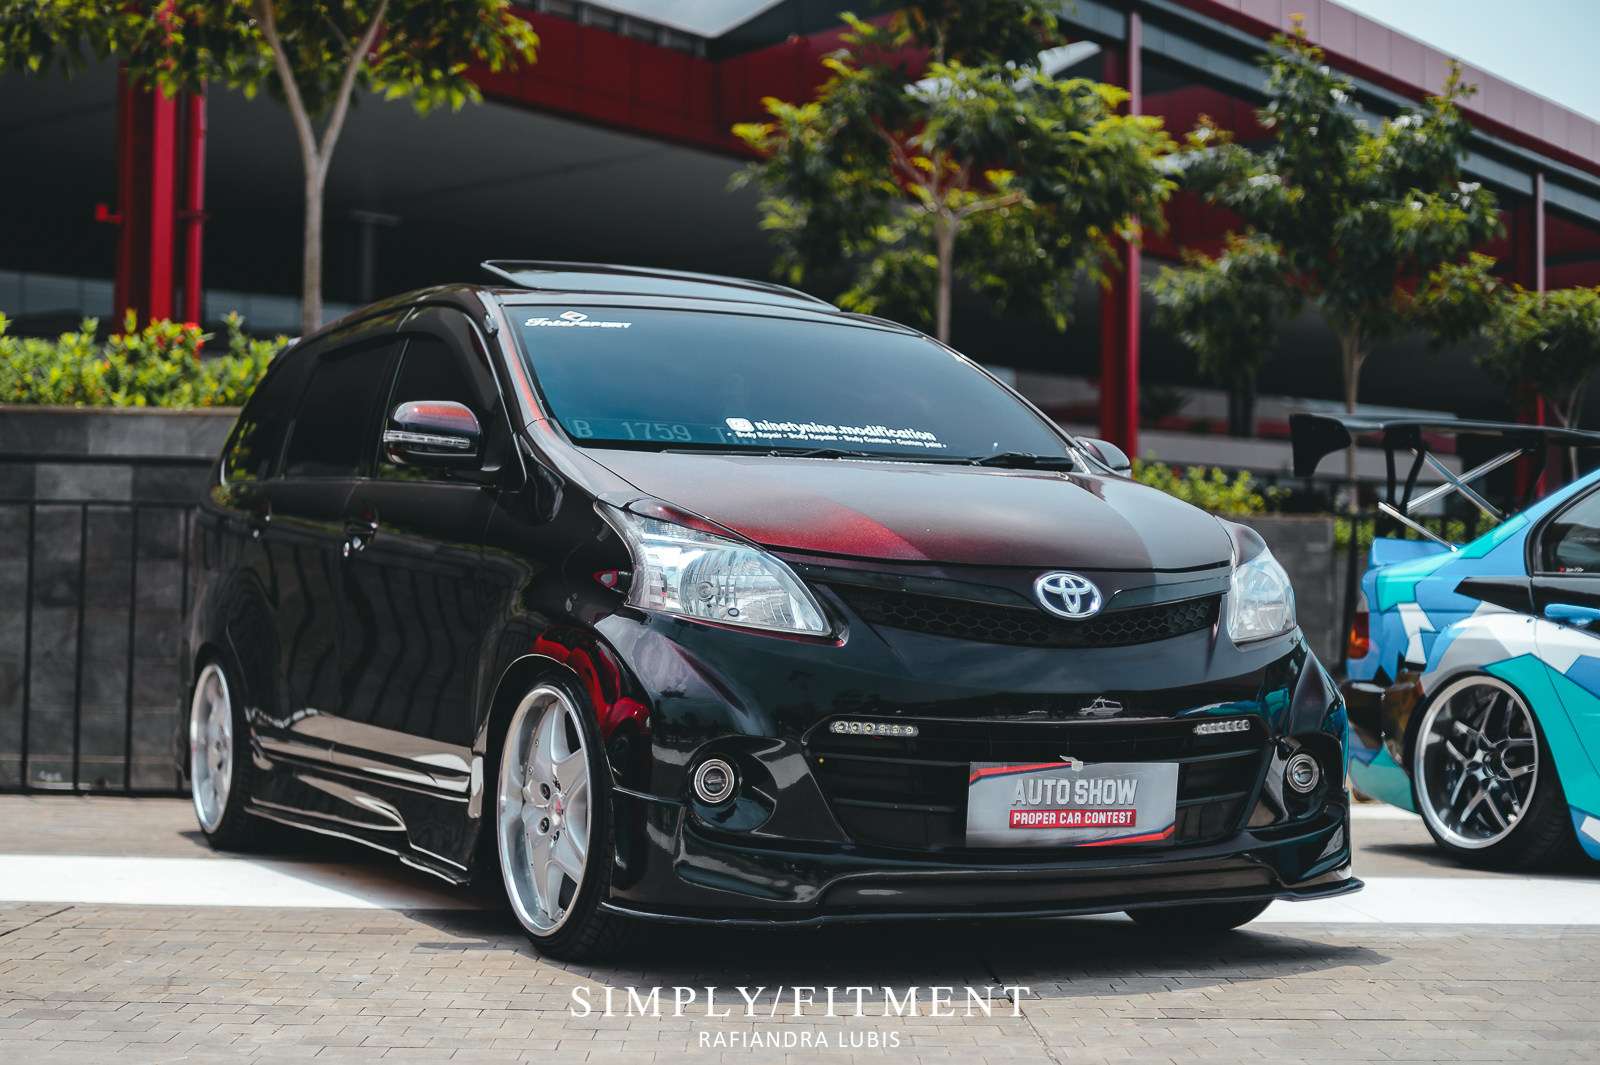 INTERSPORT AUTOSHOW PROPER CAR CONTEST TANGERANG 2018